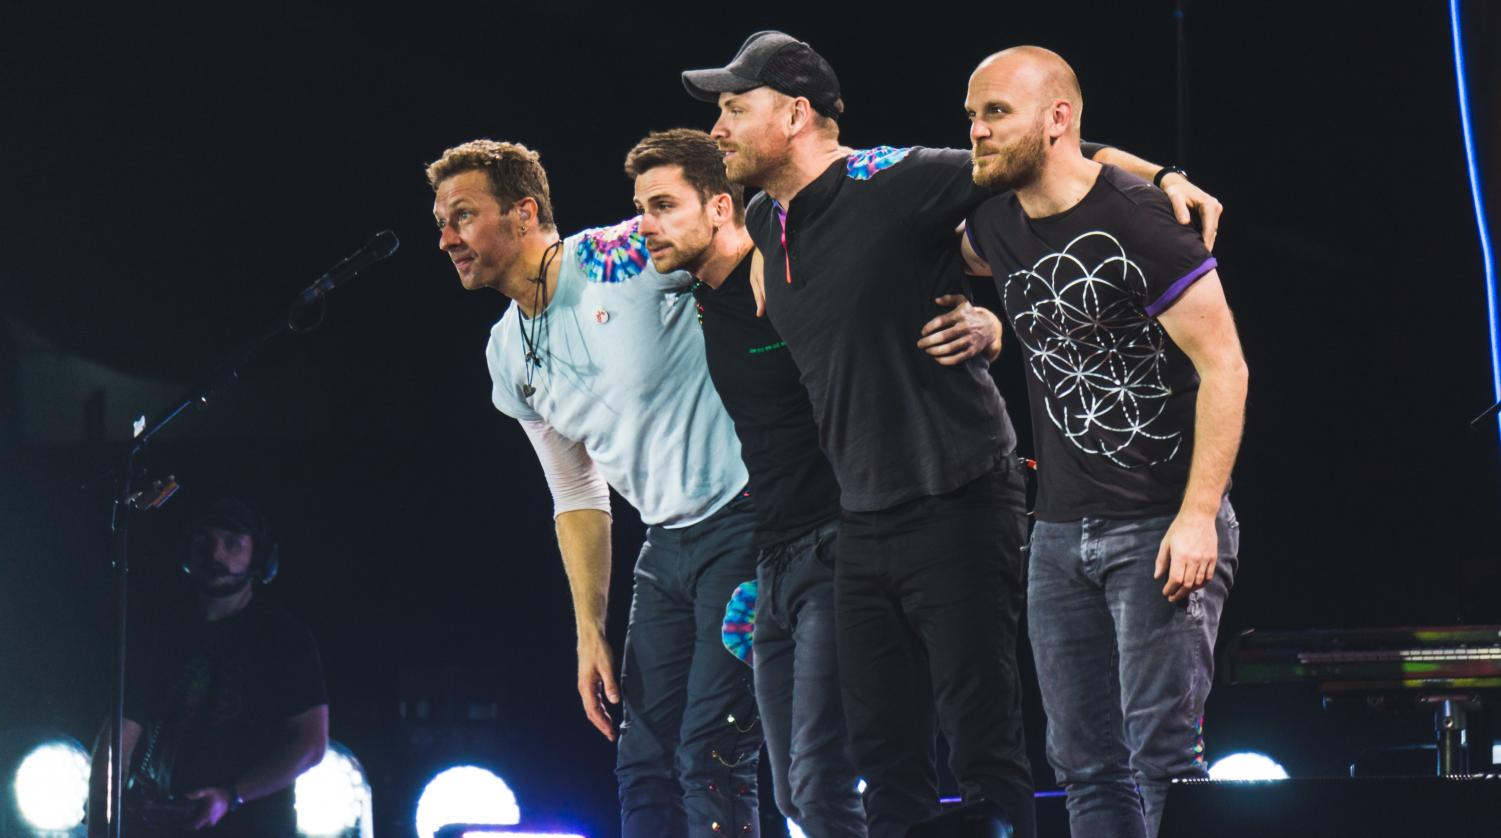 Coldplay performs at the 2017 Rose Bowl. 'Everyday Life' has had 4,000 chart sales, according to Billboard.